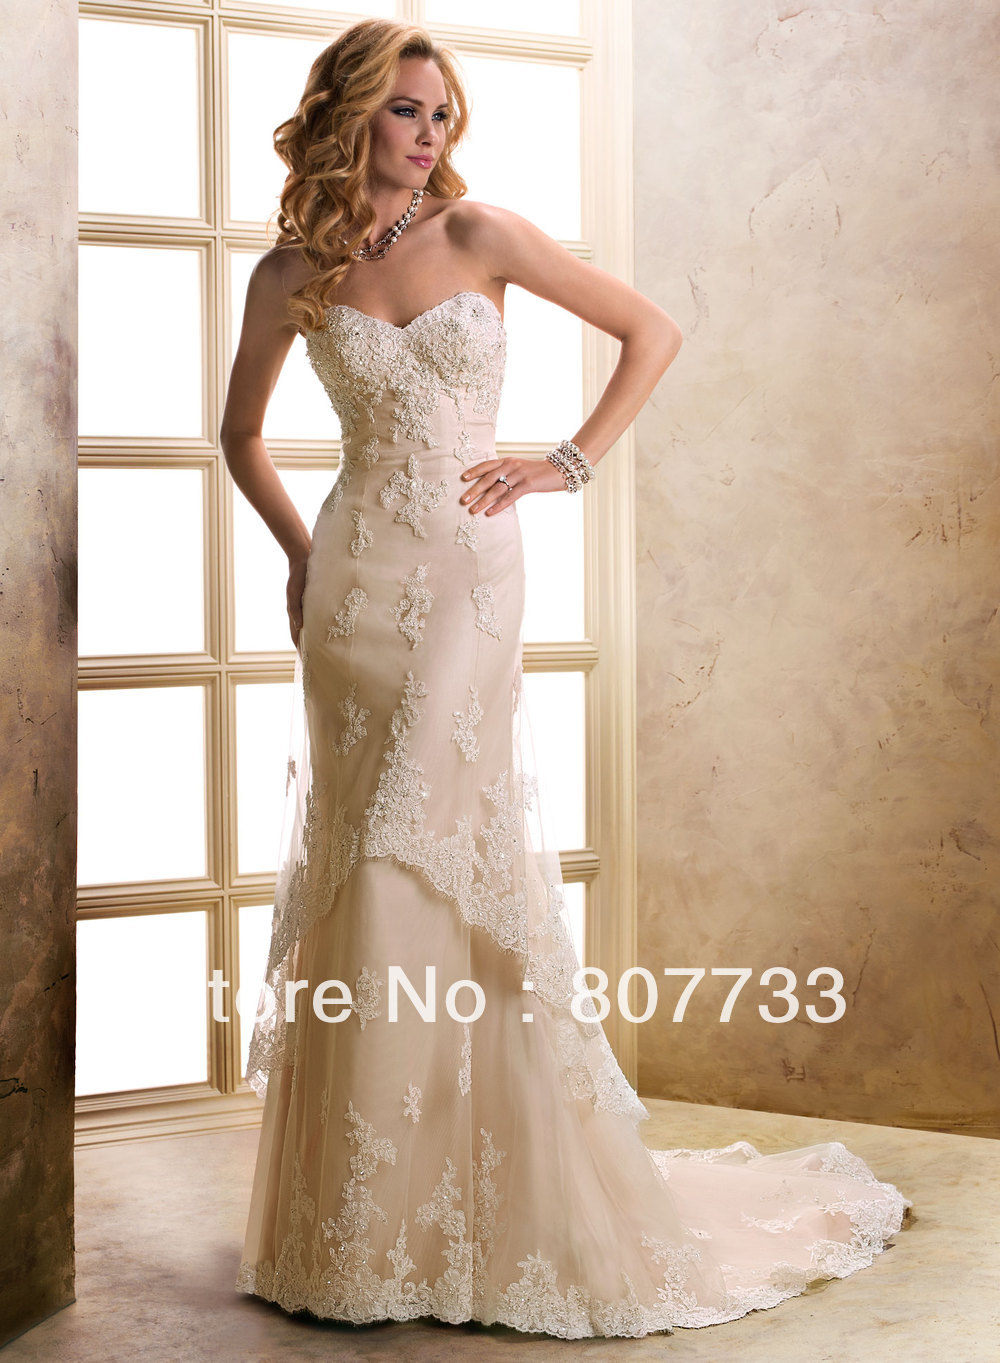 long wedding dresses Aliexpress com Buy special sweetheart double layer lace long wedding dresses from Reliable wedding dress sexy suppliers on JM Bridals